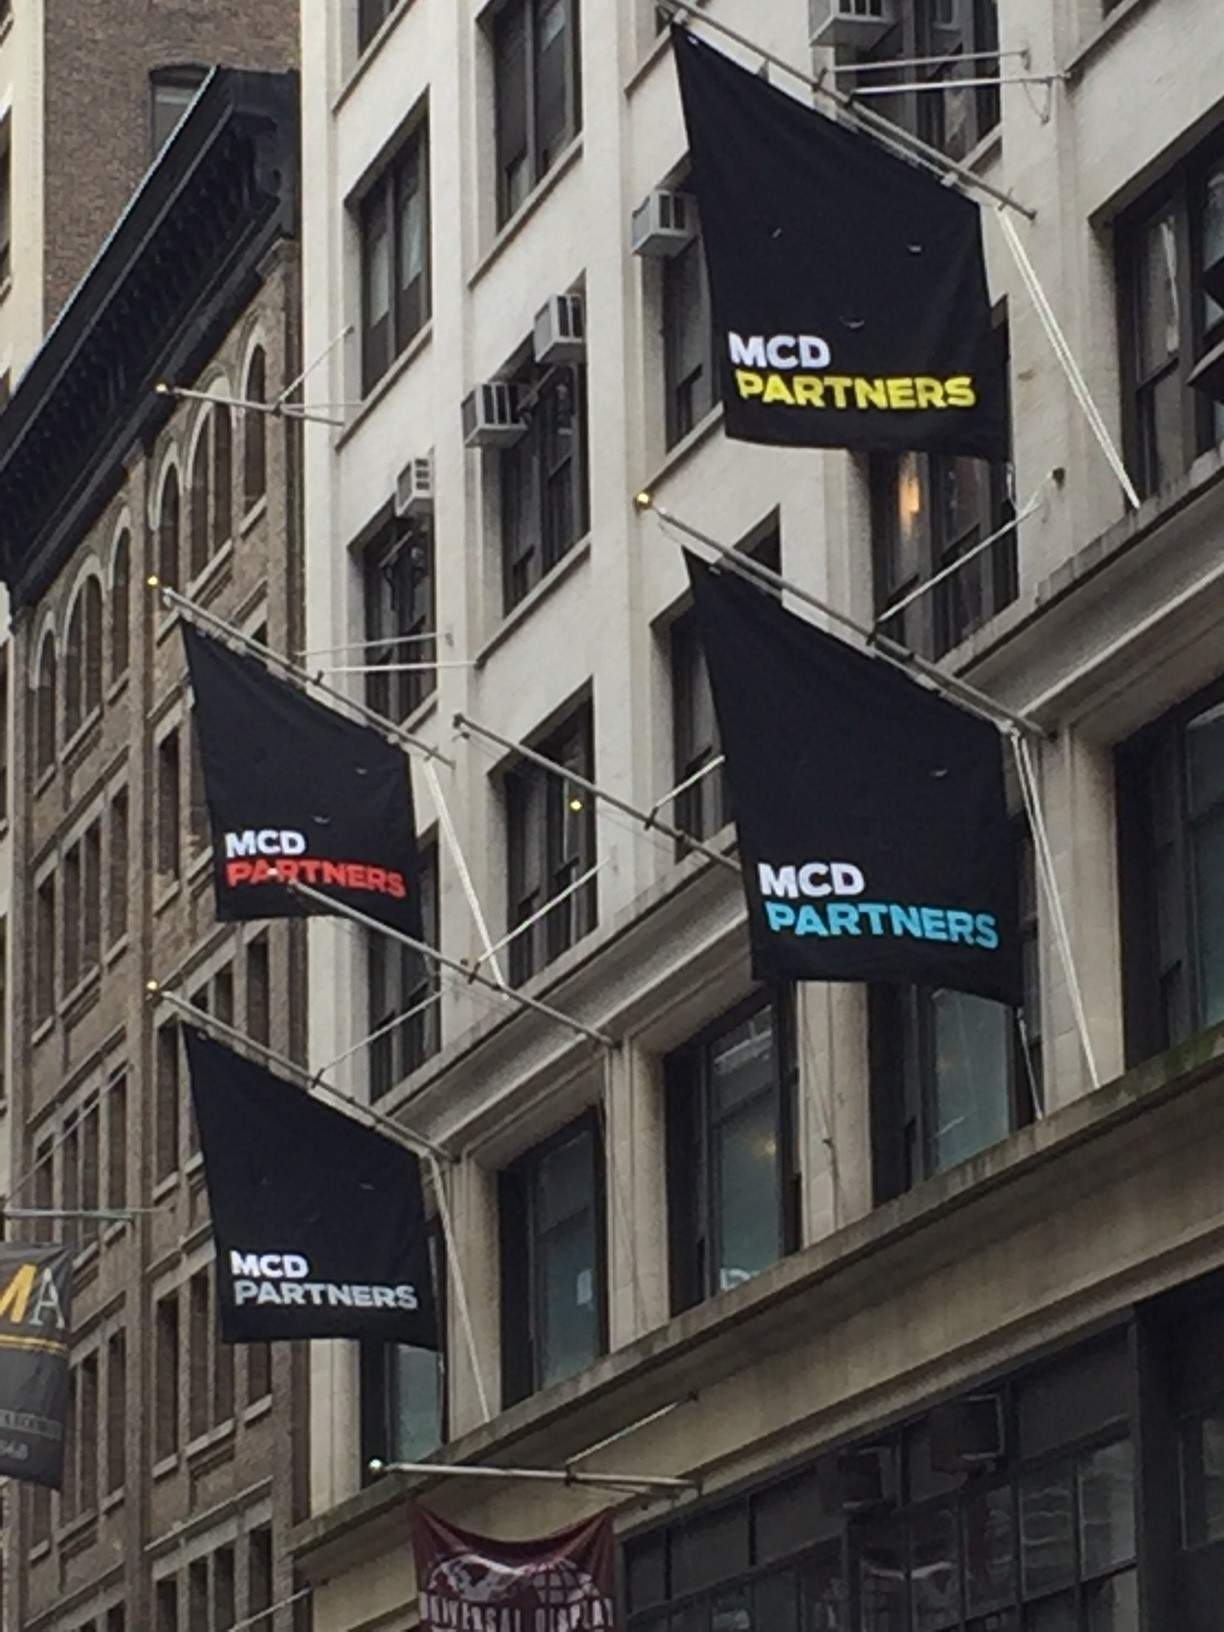 National Flag and Display produces Custom Outdoor Flag Banners for the MCD Partners